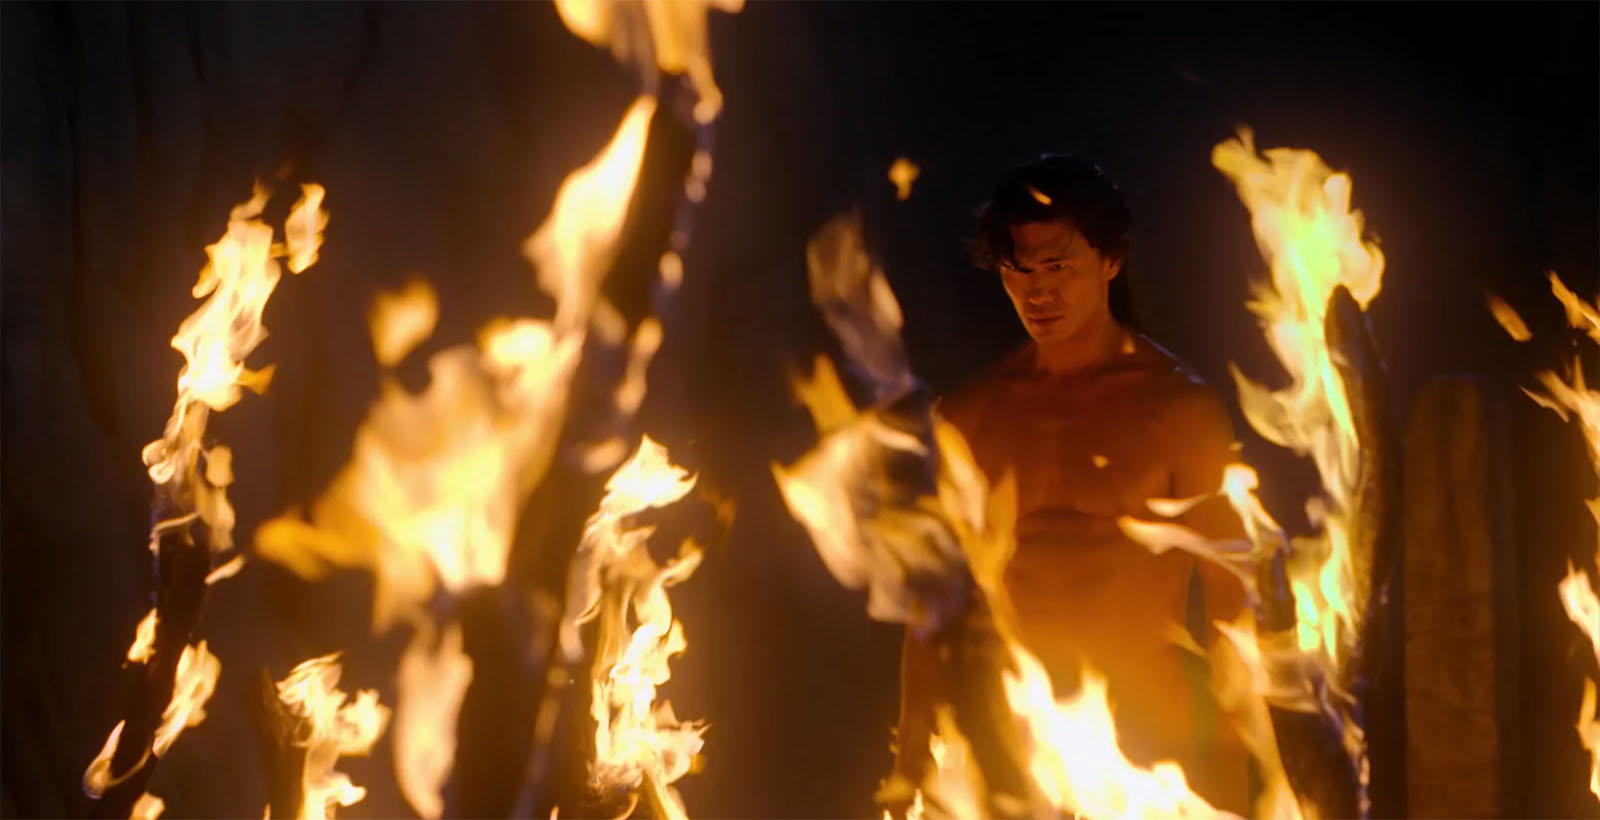 Firewalk scene from Marco Polo